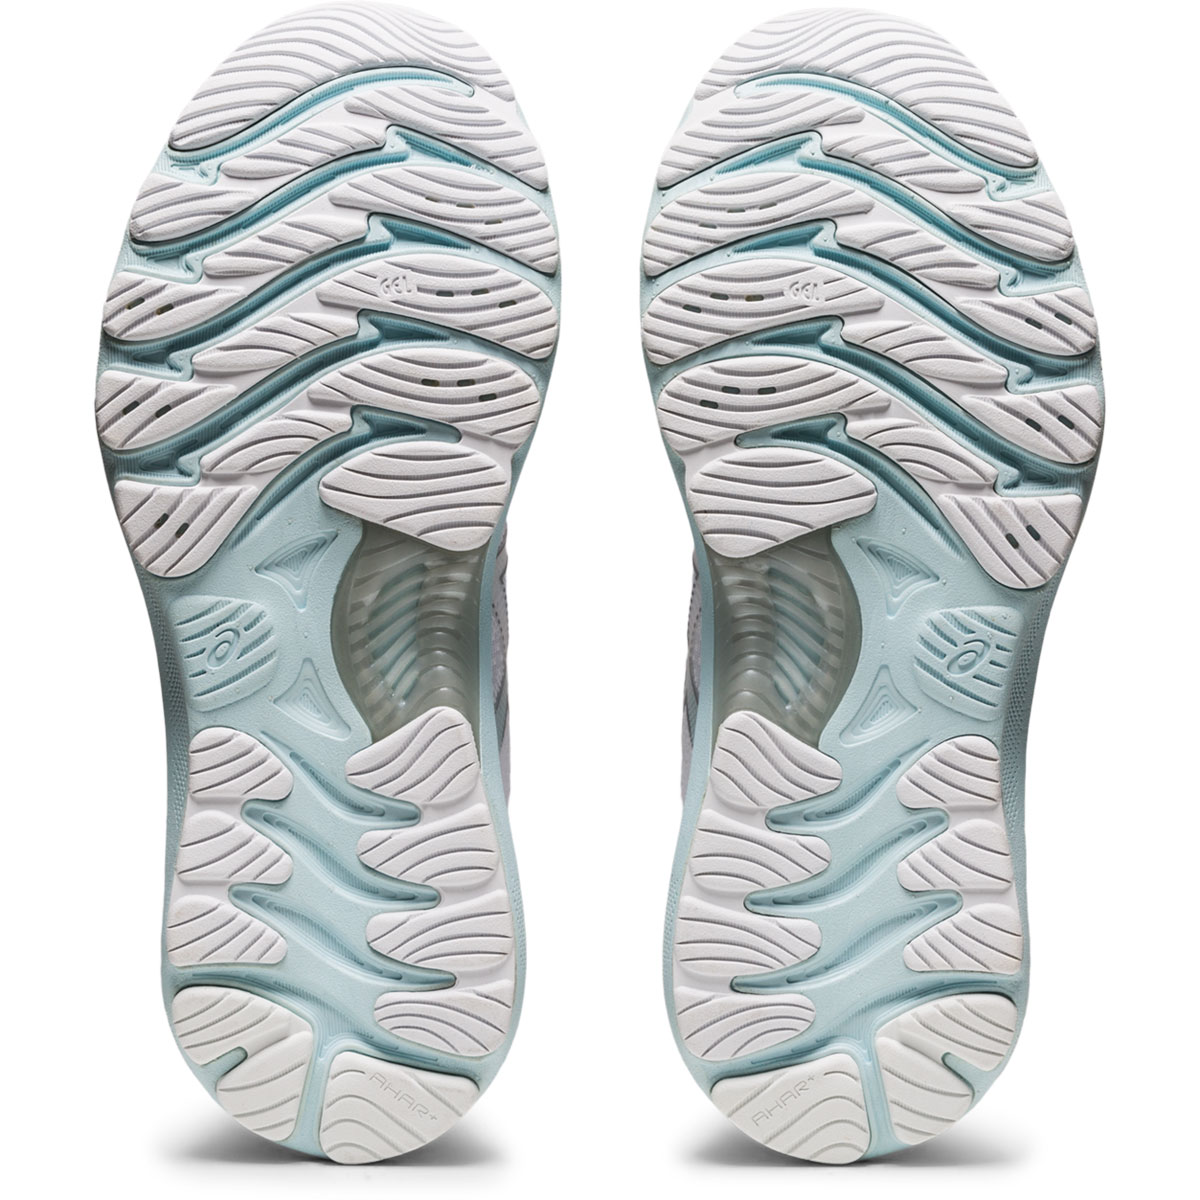 Women's Asics Gel-Nimbus 23 Running Shoe - Color: White/Pure Silver - Size: 5 - Width: Regular, White/Pure Silver, large, image 3